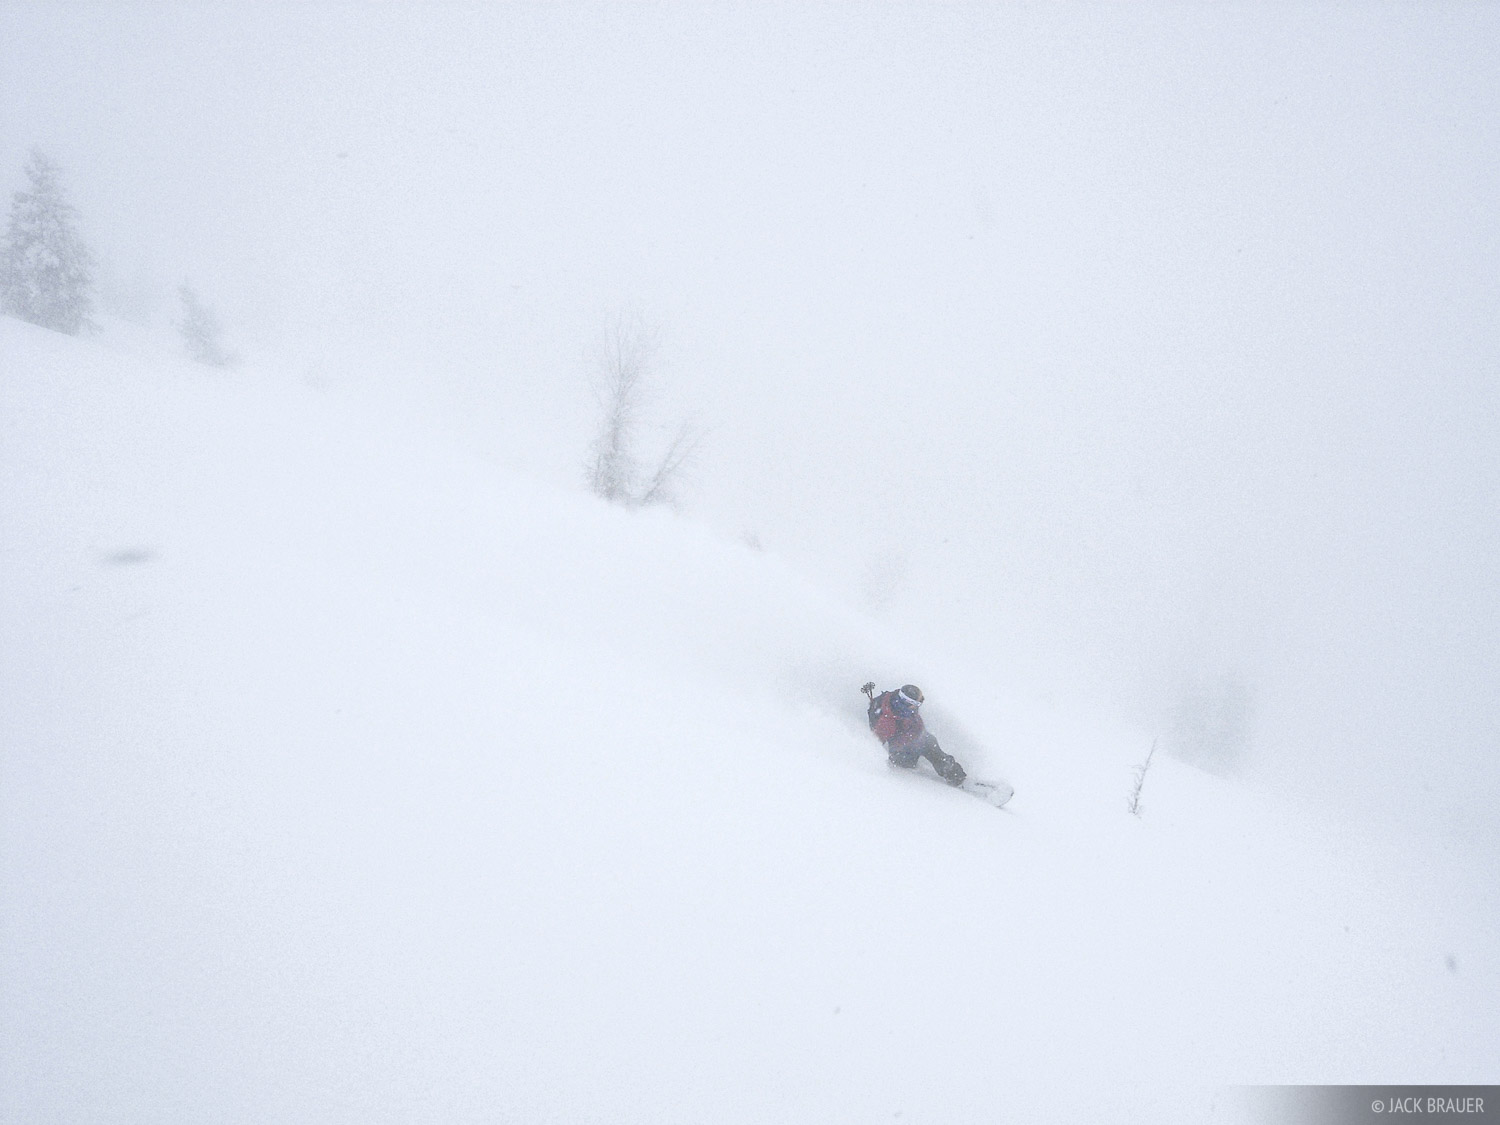 Mot Gatehouse slashes a big powder carve in near whiteout conditions in Grand Teton National Park - December.